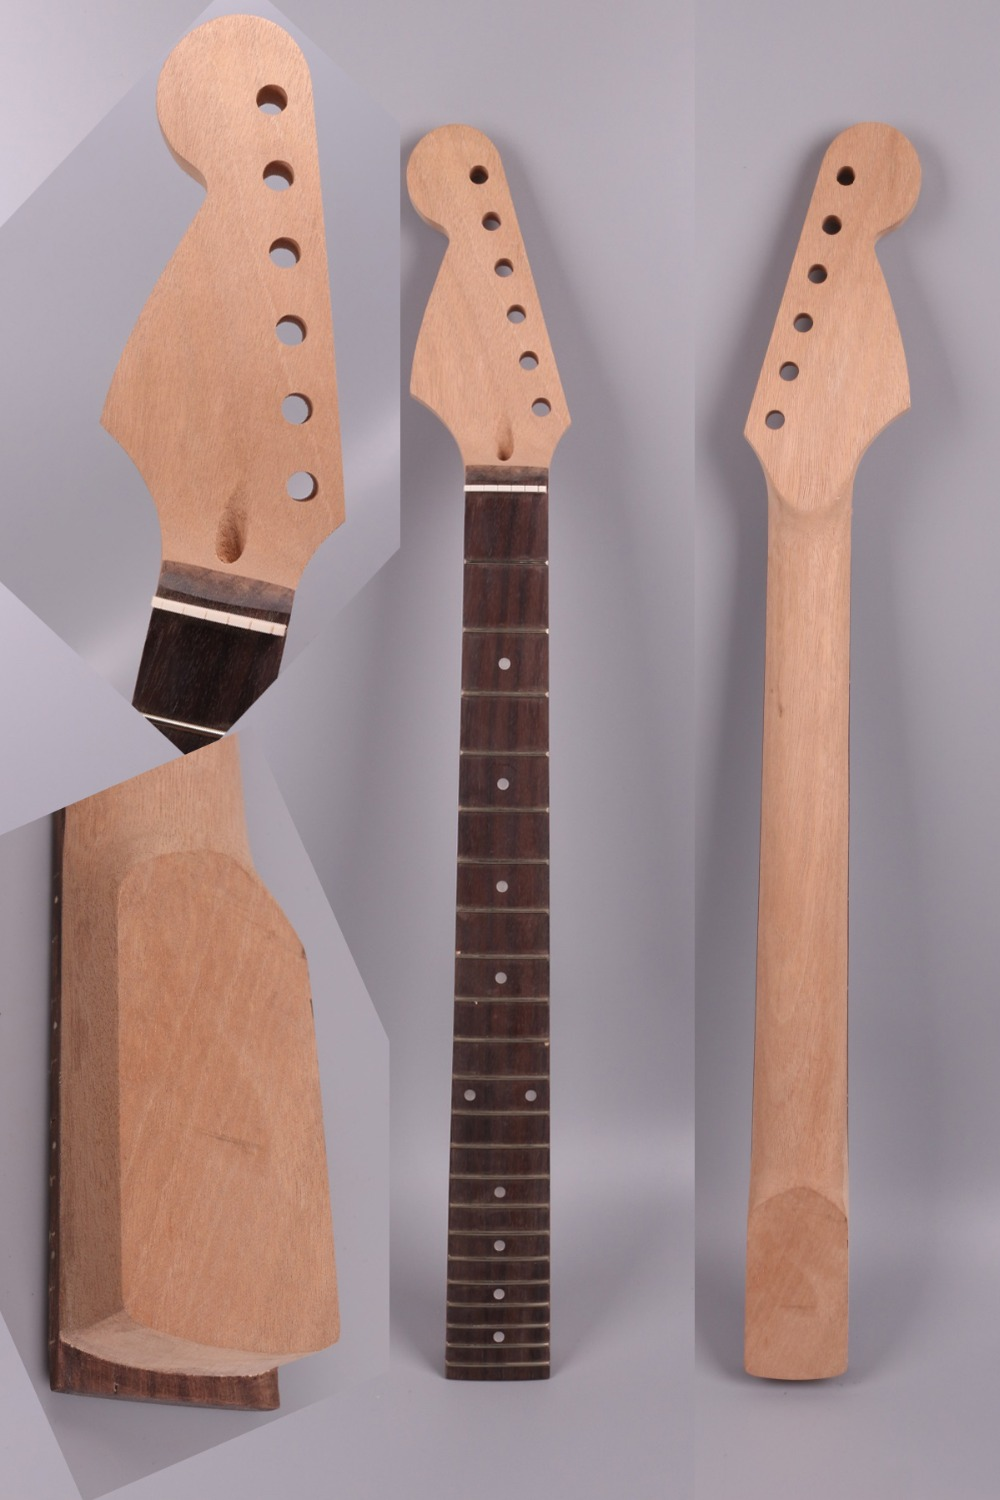 Yinfente Strat electric guitar neck replacement 22 fret Reverse head rosewood fretboard Dot inlay 25.5 inch Mahogany Neck #S37 yinfente electric guitar neck 22 fret reversed head rosewood fretboard 25 5 inch maple locking nut shark inlay 13